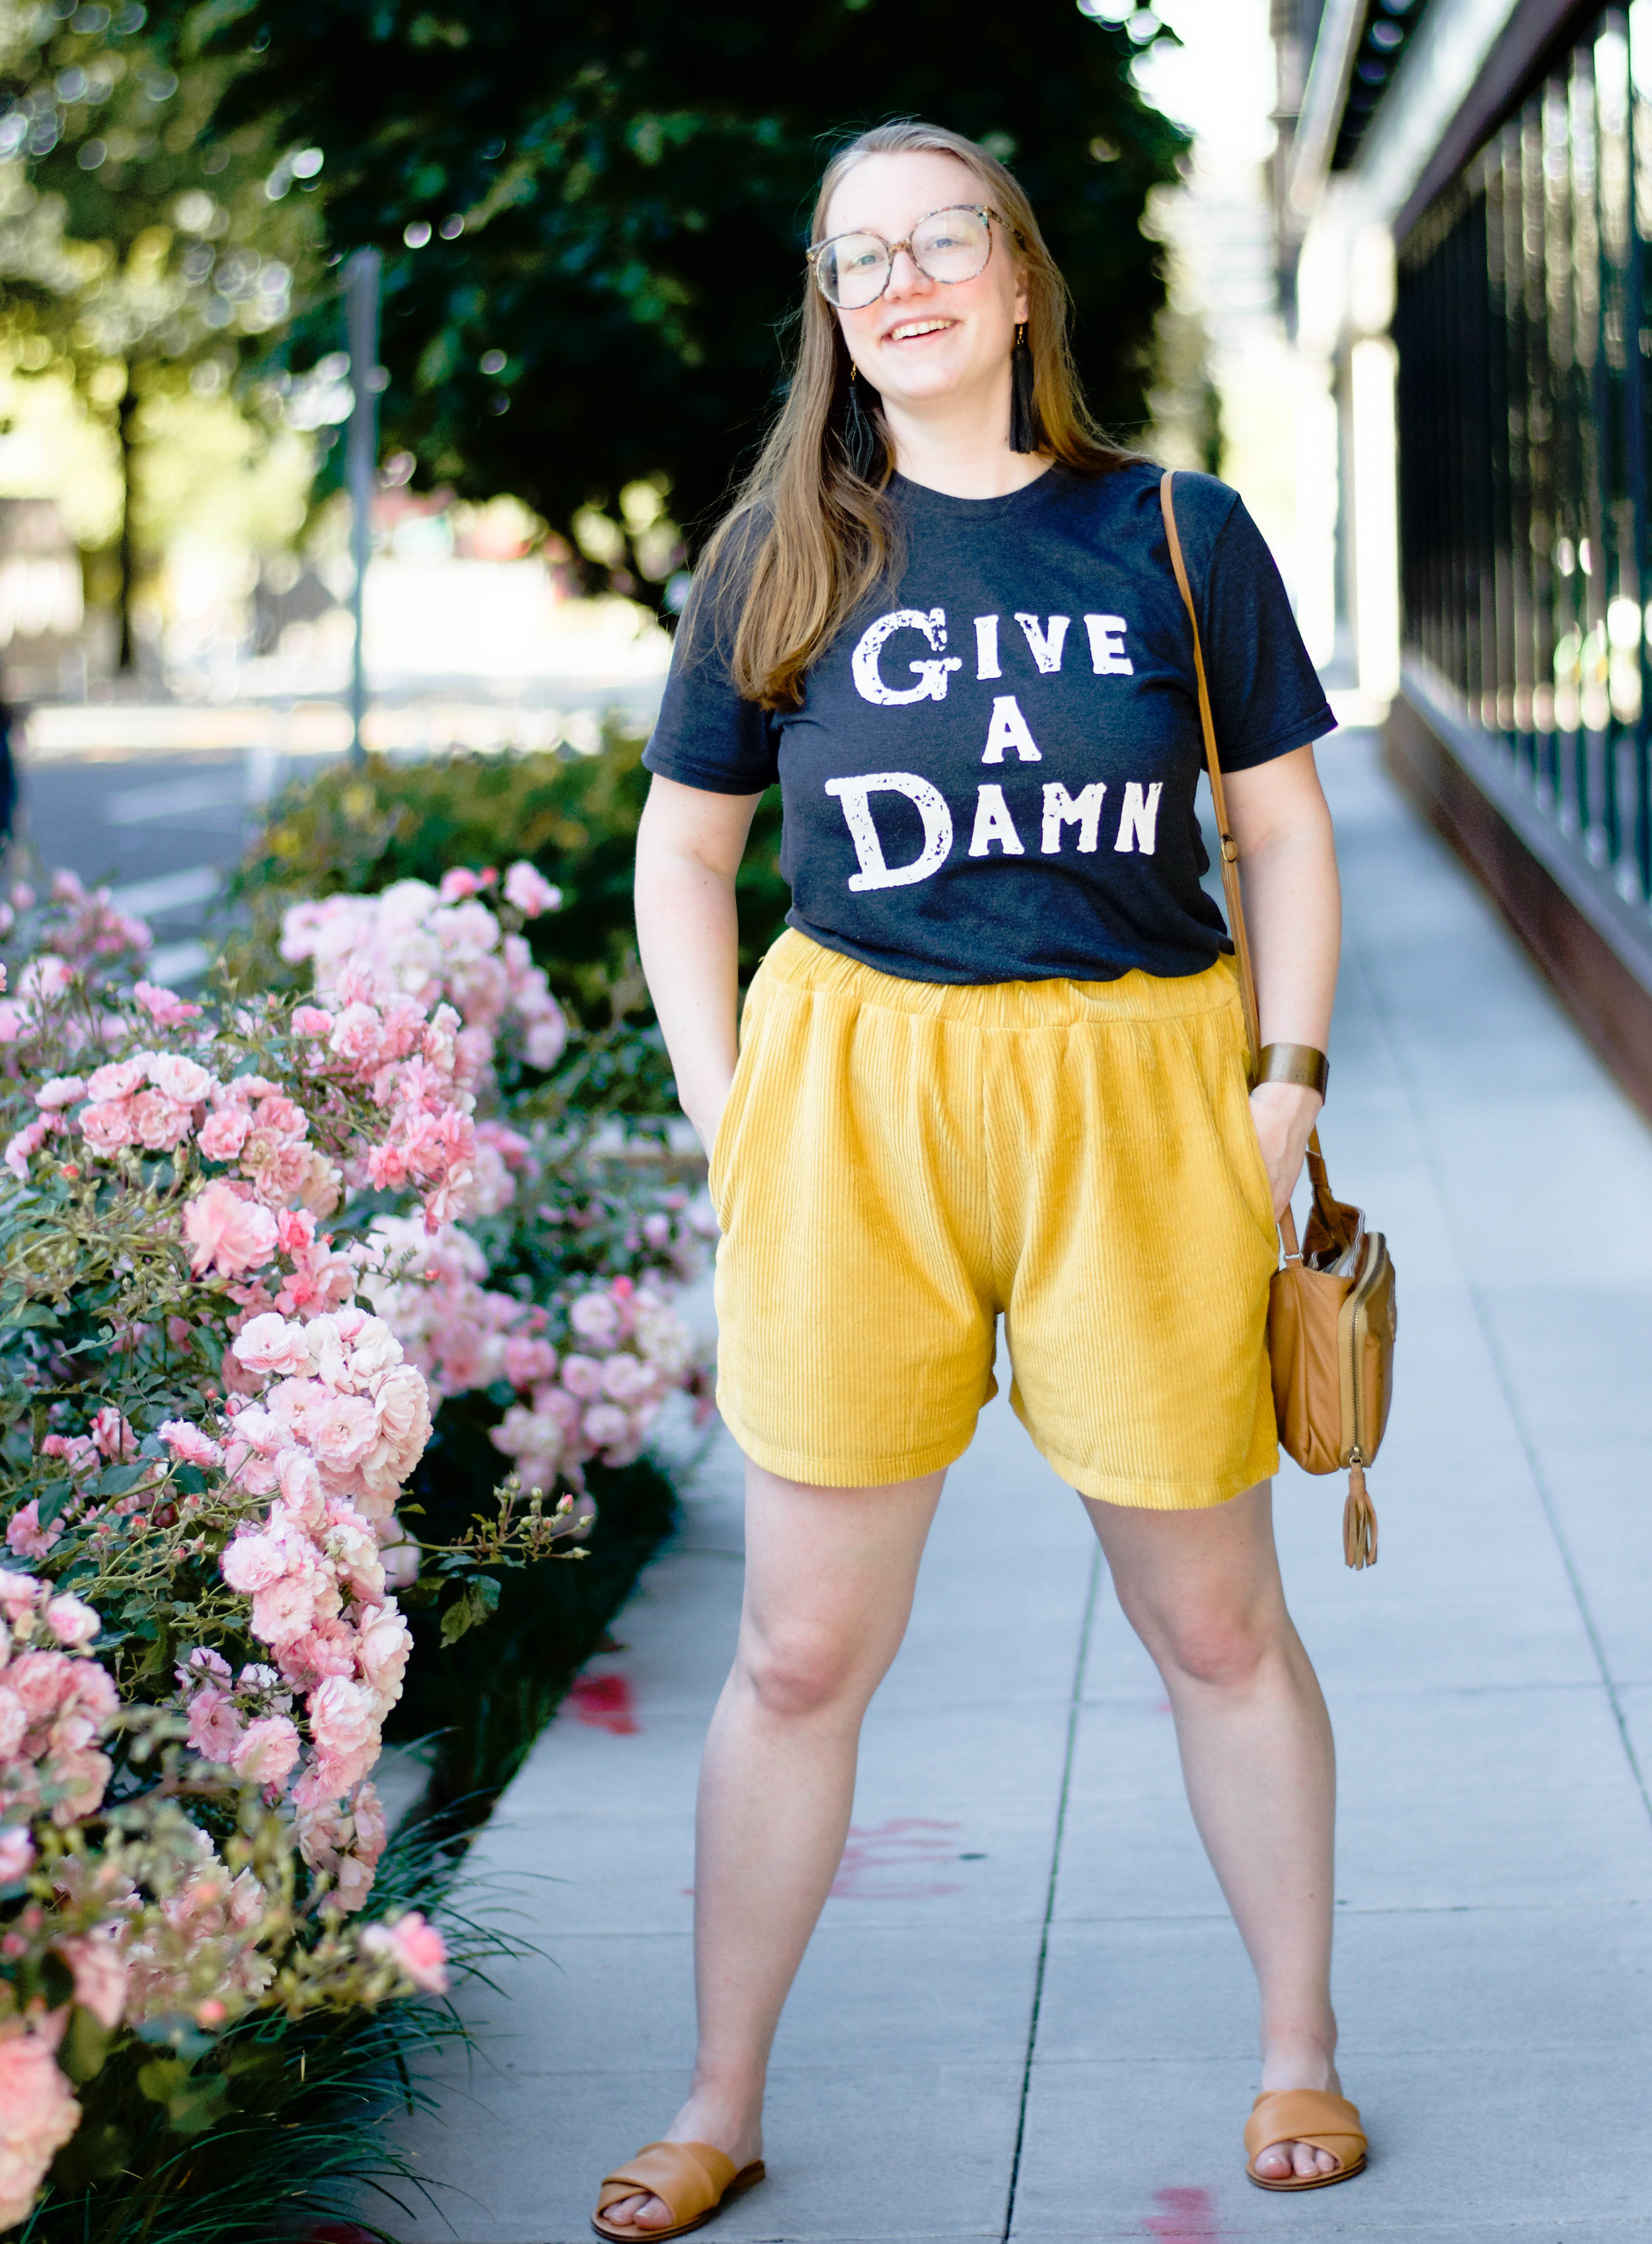 Ethically styled in  Give a Damn Shirt from Give a Damn Goods  +  Culotte shorts from Tonle  +  Crossover Sandals from Everlane  +  Medium Copper Cuff from BRANDED Collective  +  Leonie Handbag from Empire of Bees